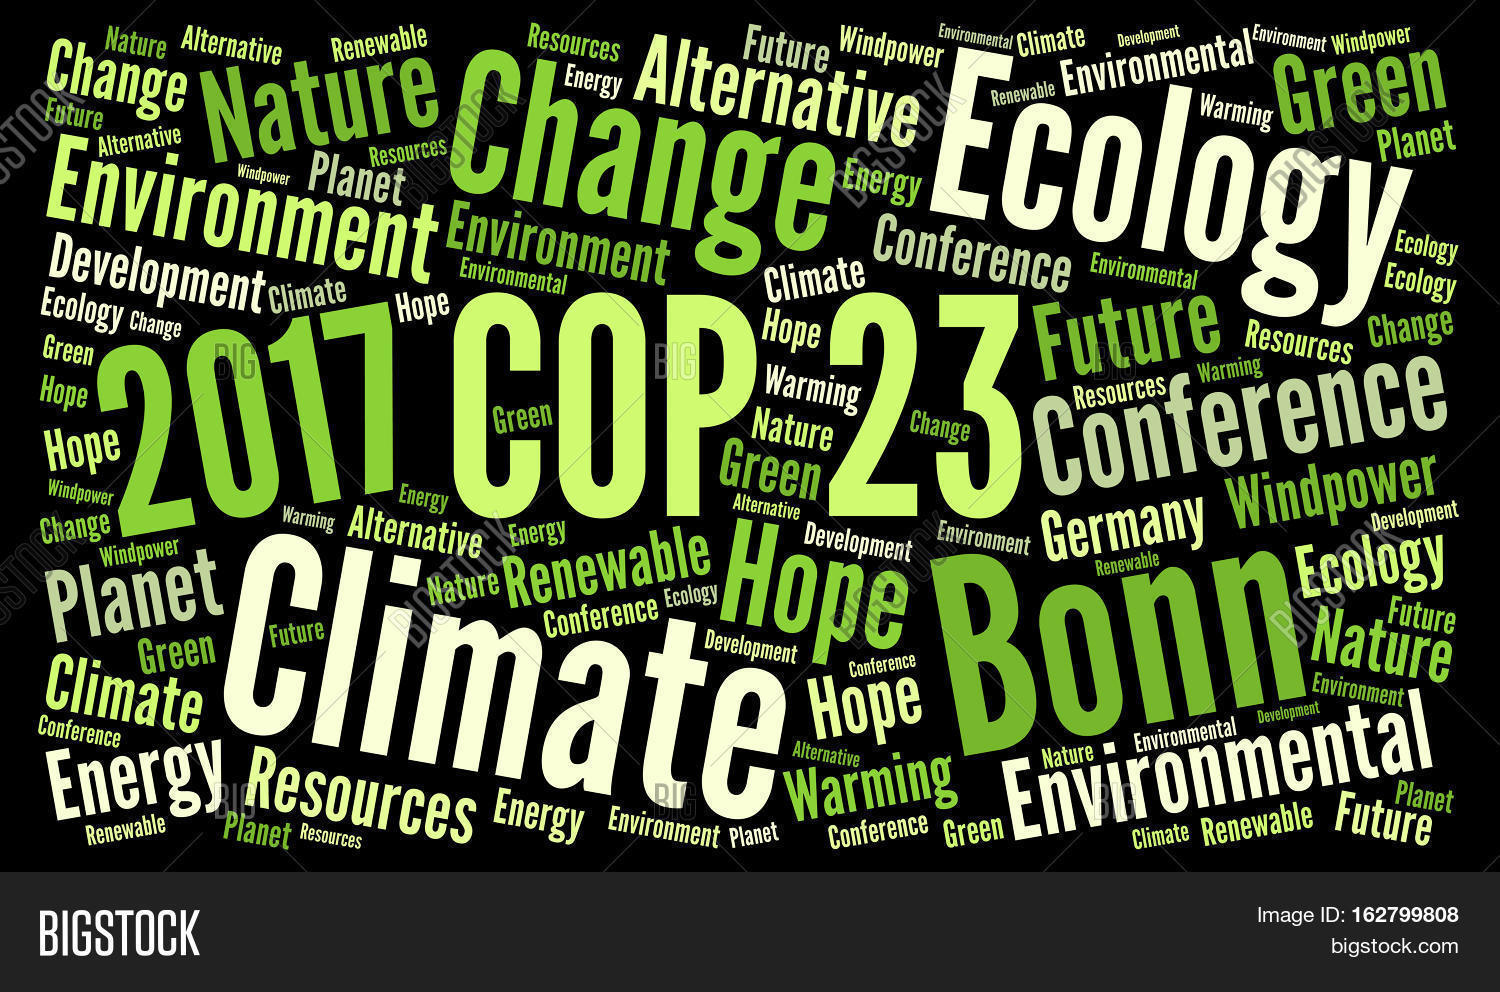 Climate Tracker COP23